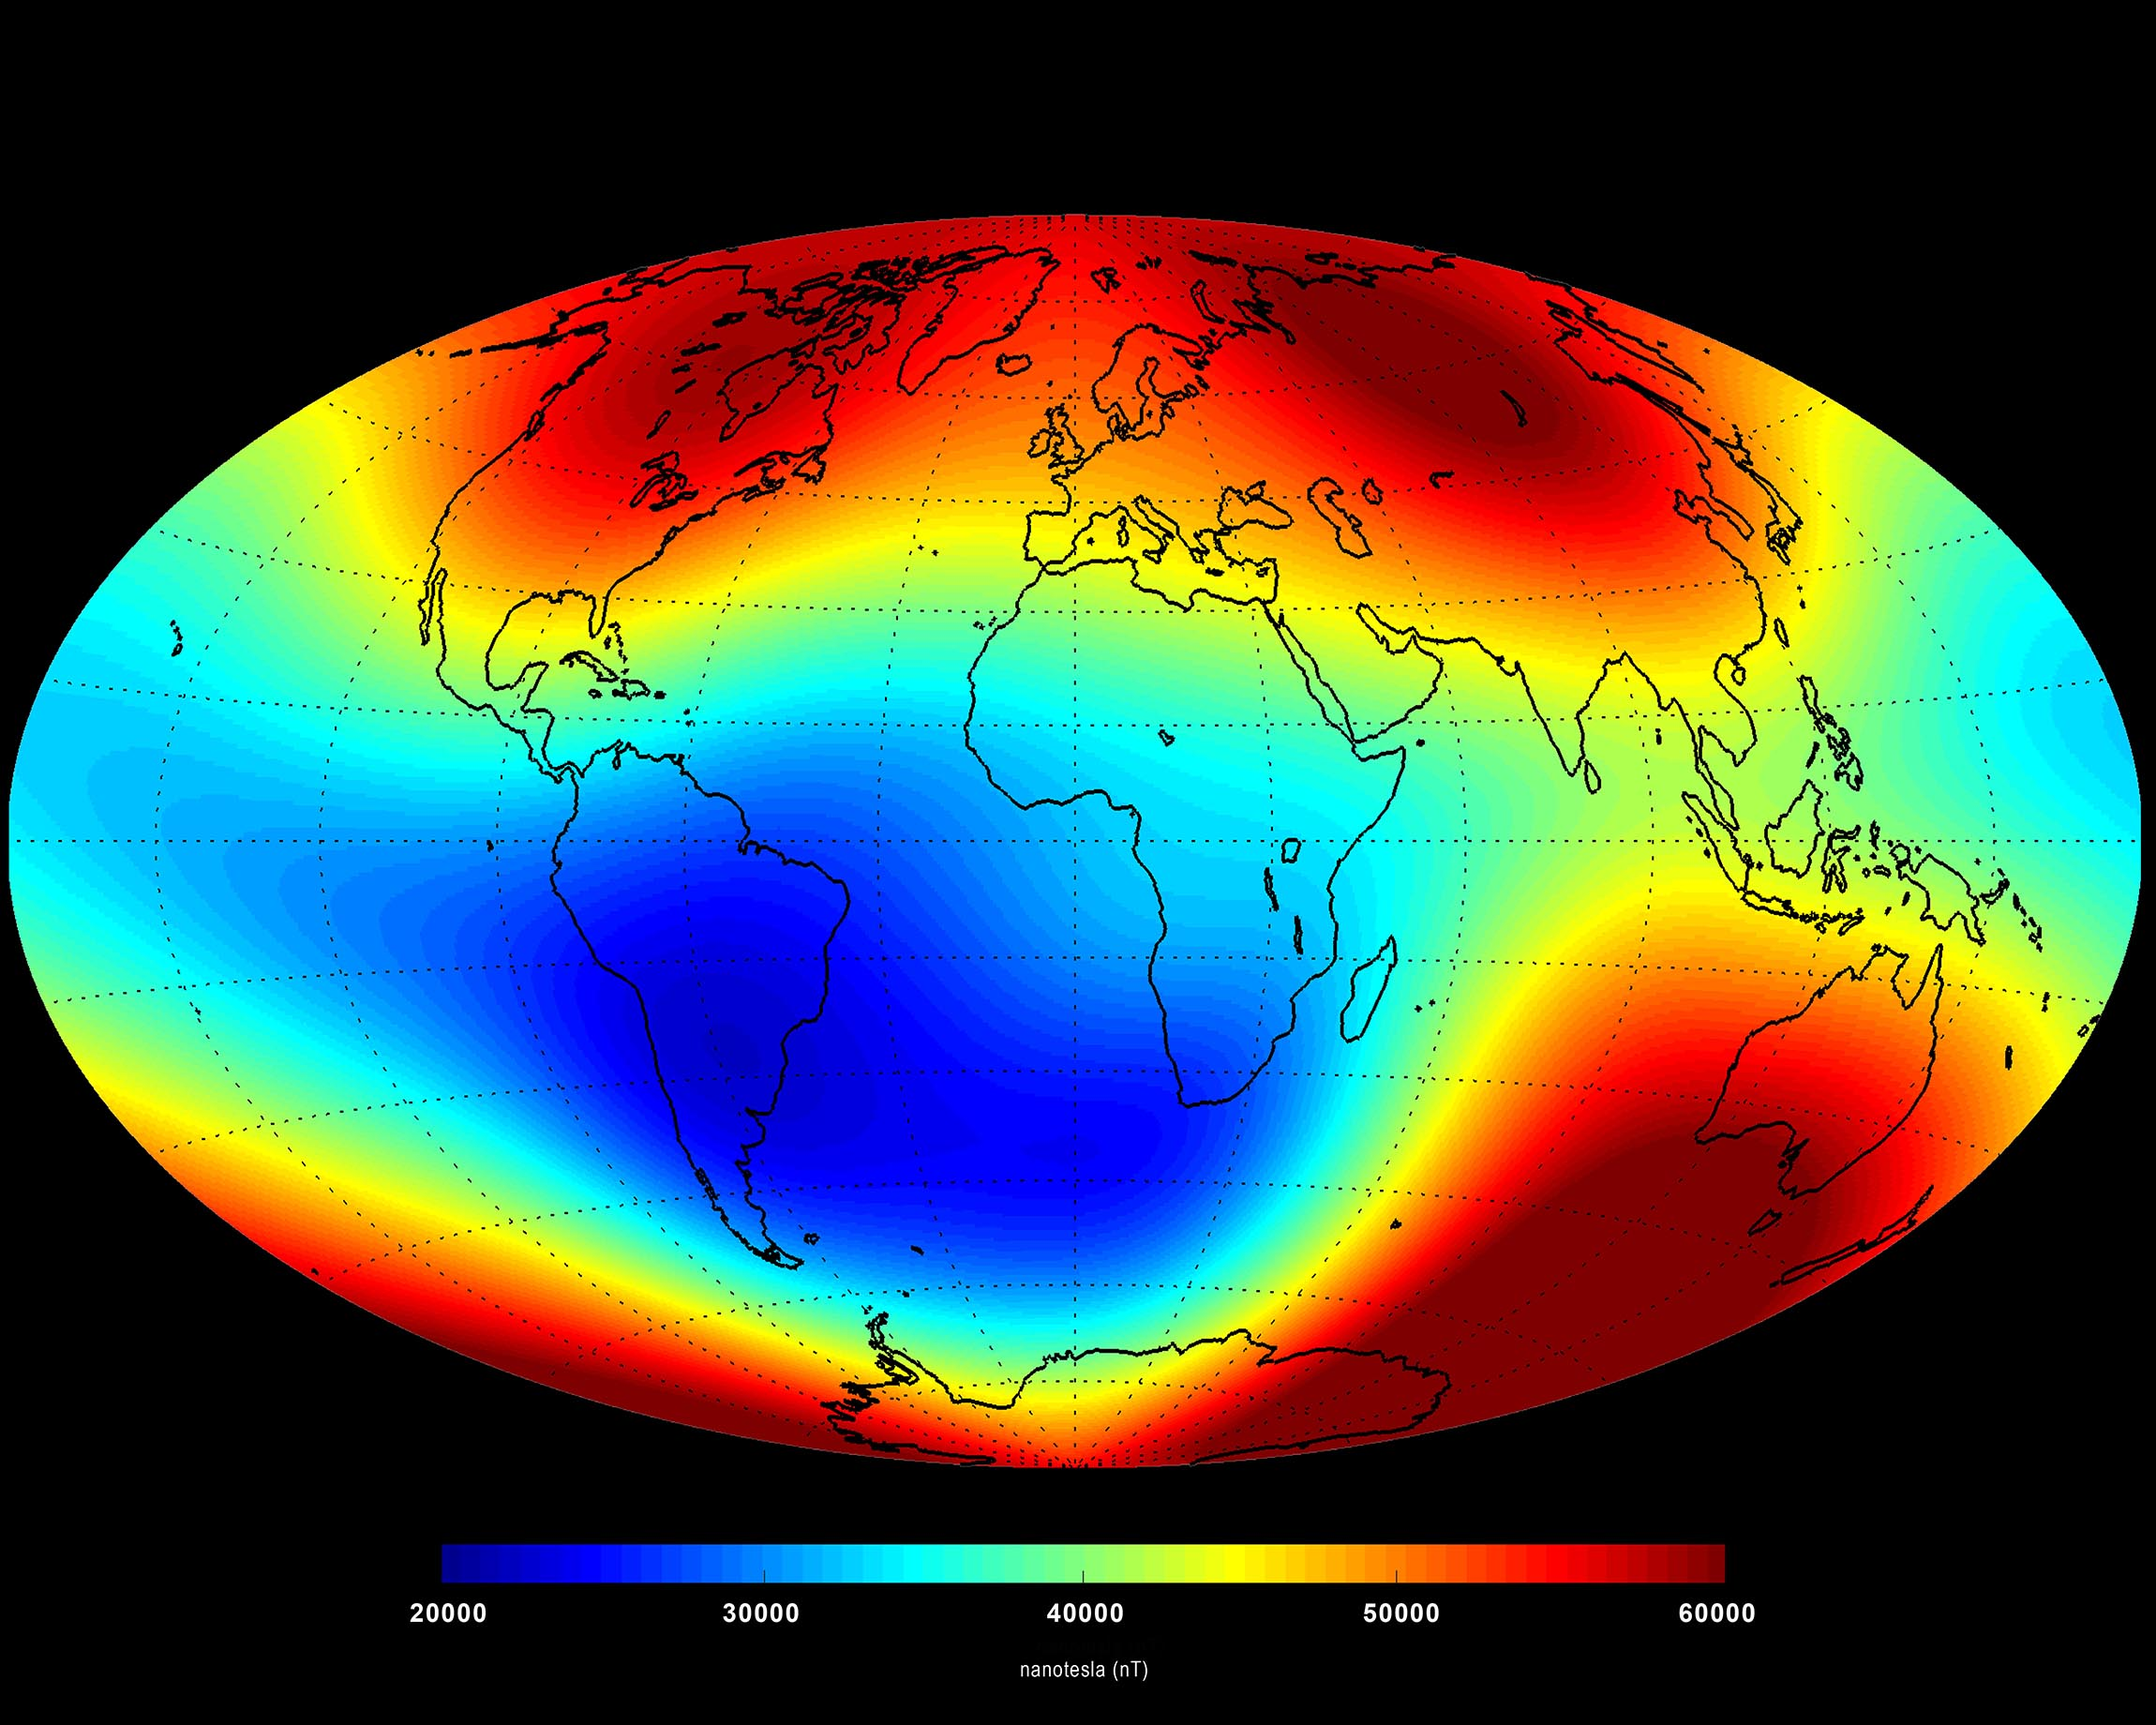 The Earth's magnetic field has been weakening over the South Atlantic (blue region). Image credit - ESA/DTU Space